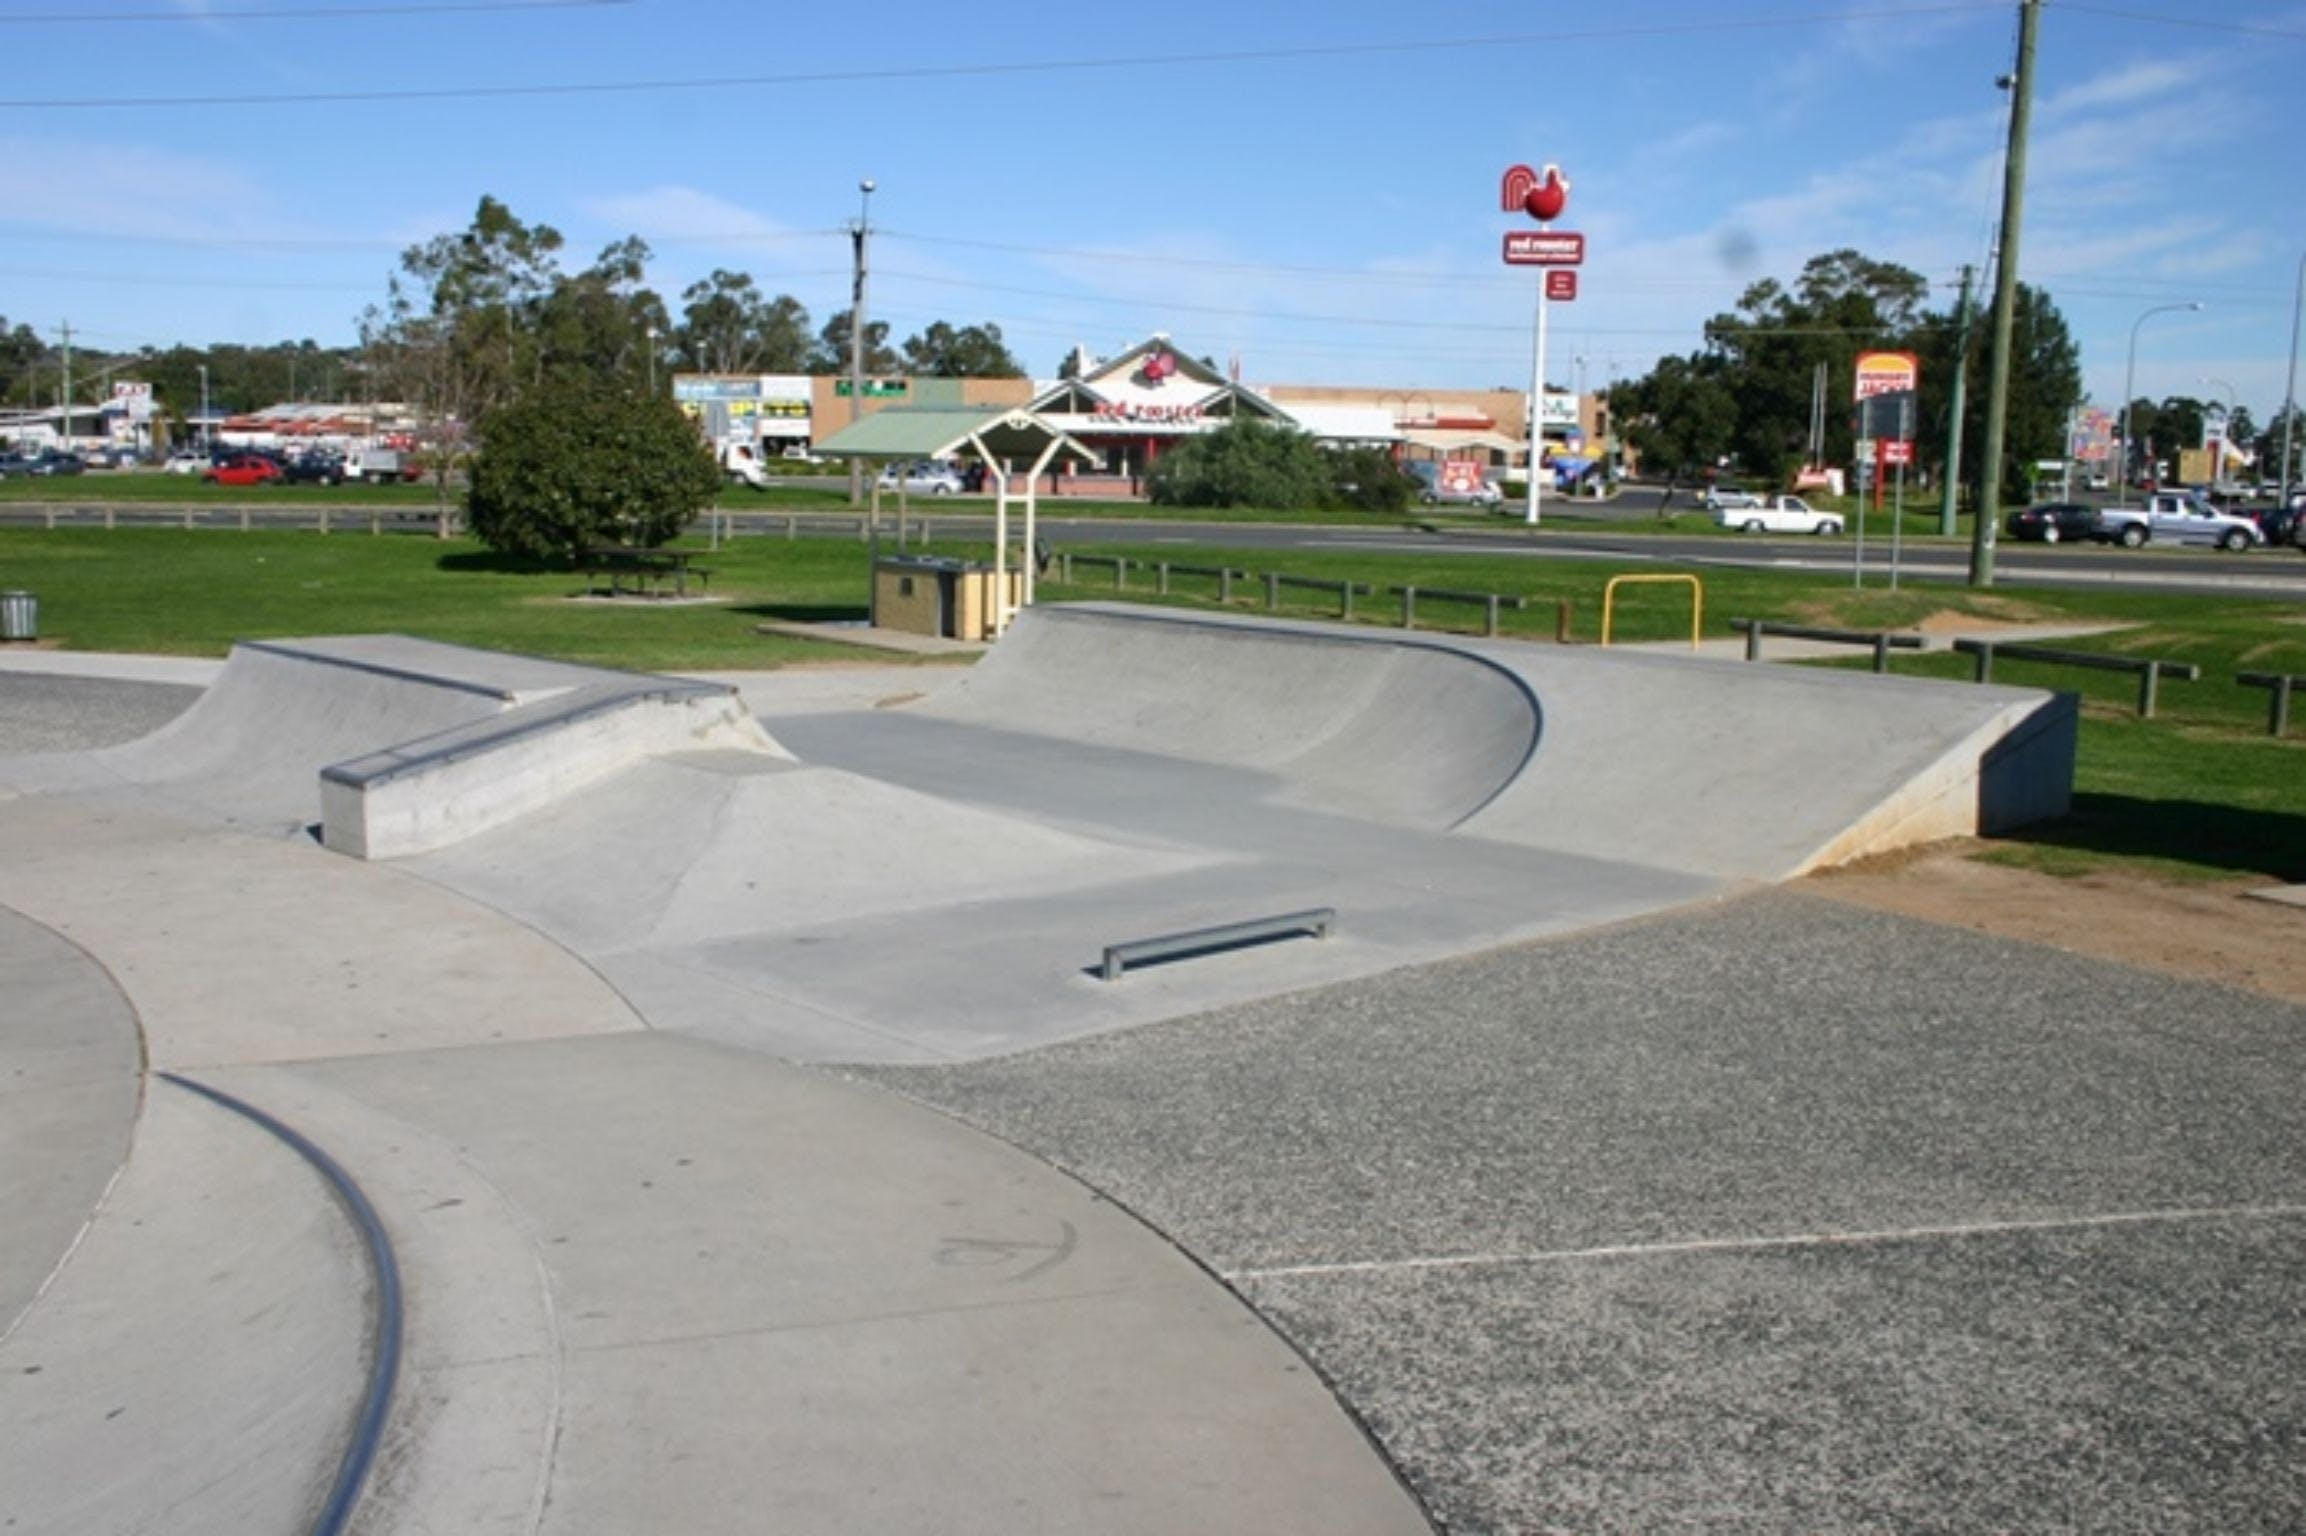 Campbelltown  Skate Park - Attractions